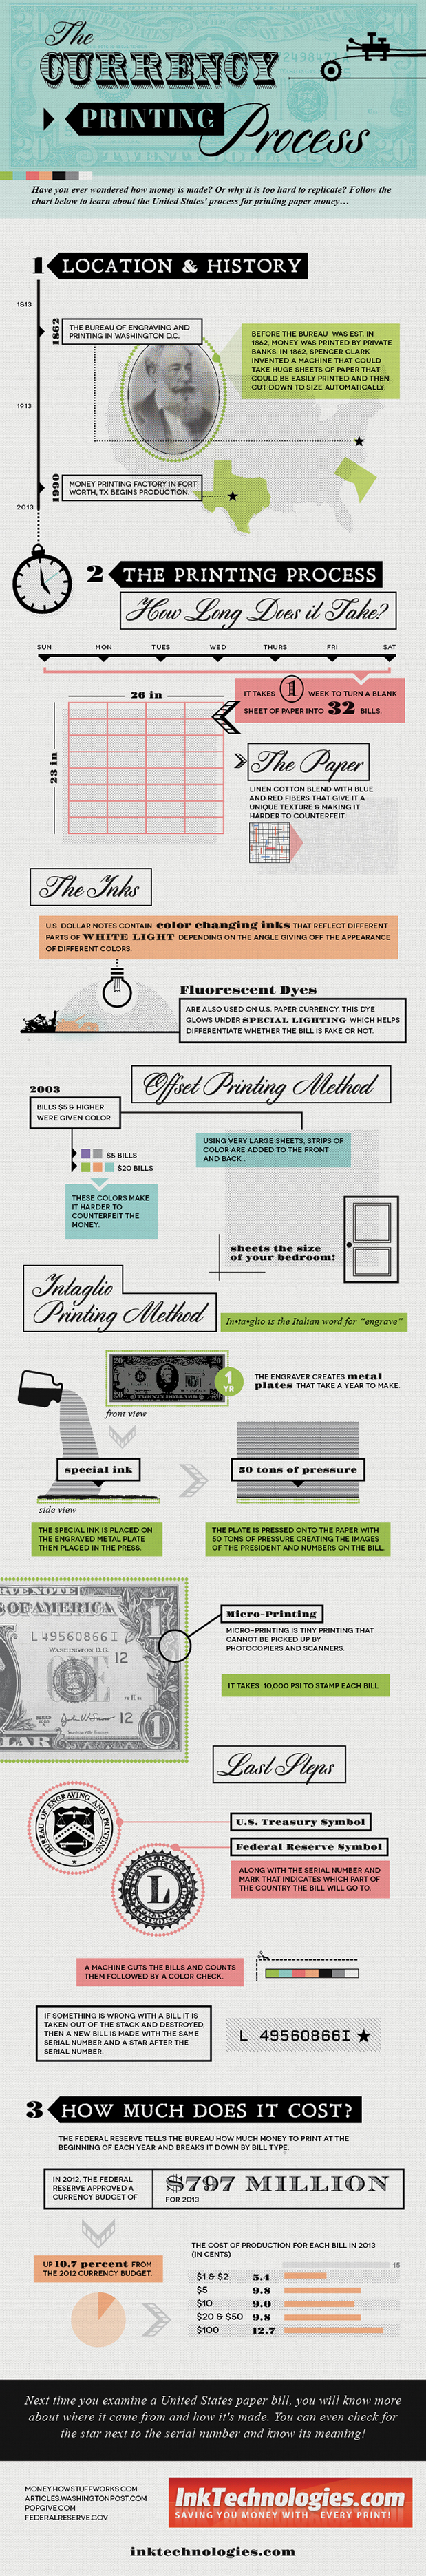 The-Currency-Printing-Process